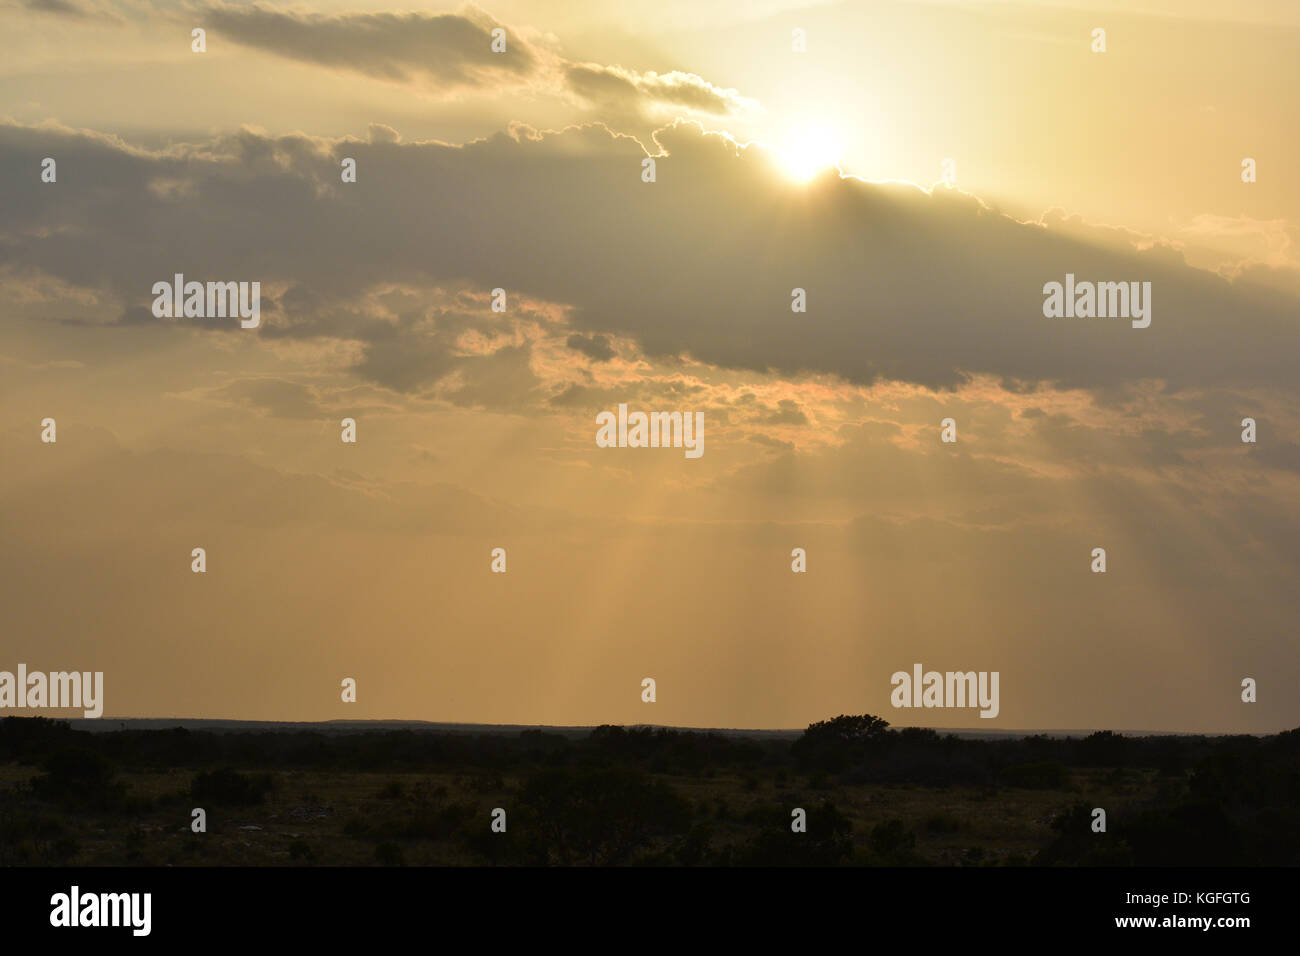 75a0467cbae78 Bright Sun rays Shining though Clouds Stock Photo  165070320 - Alamy